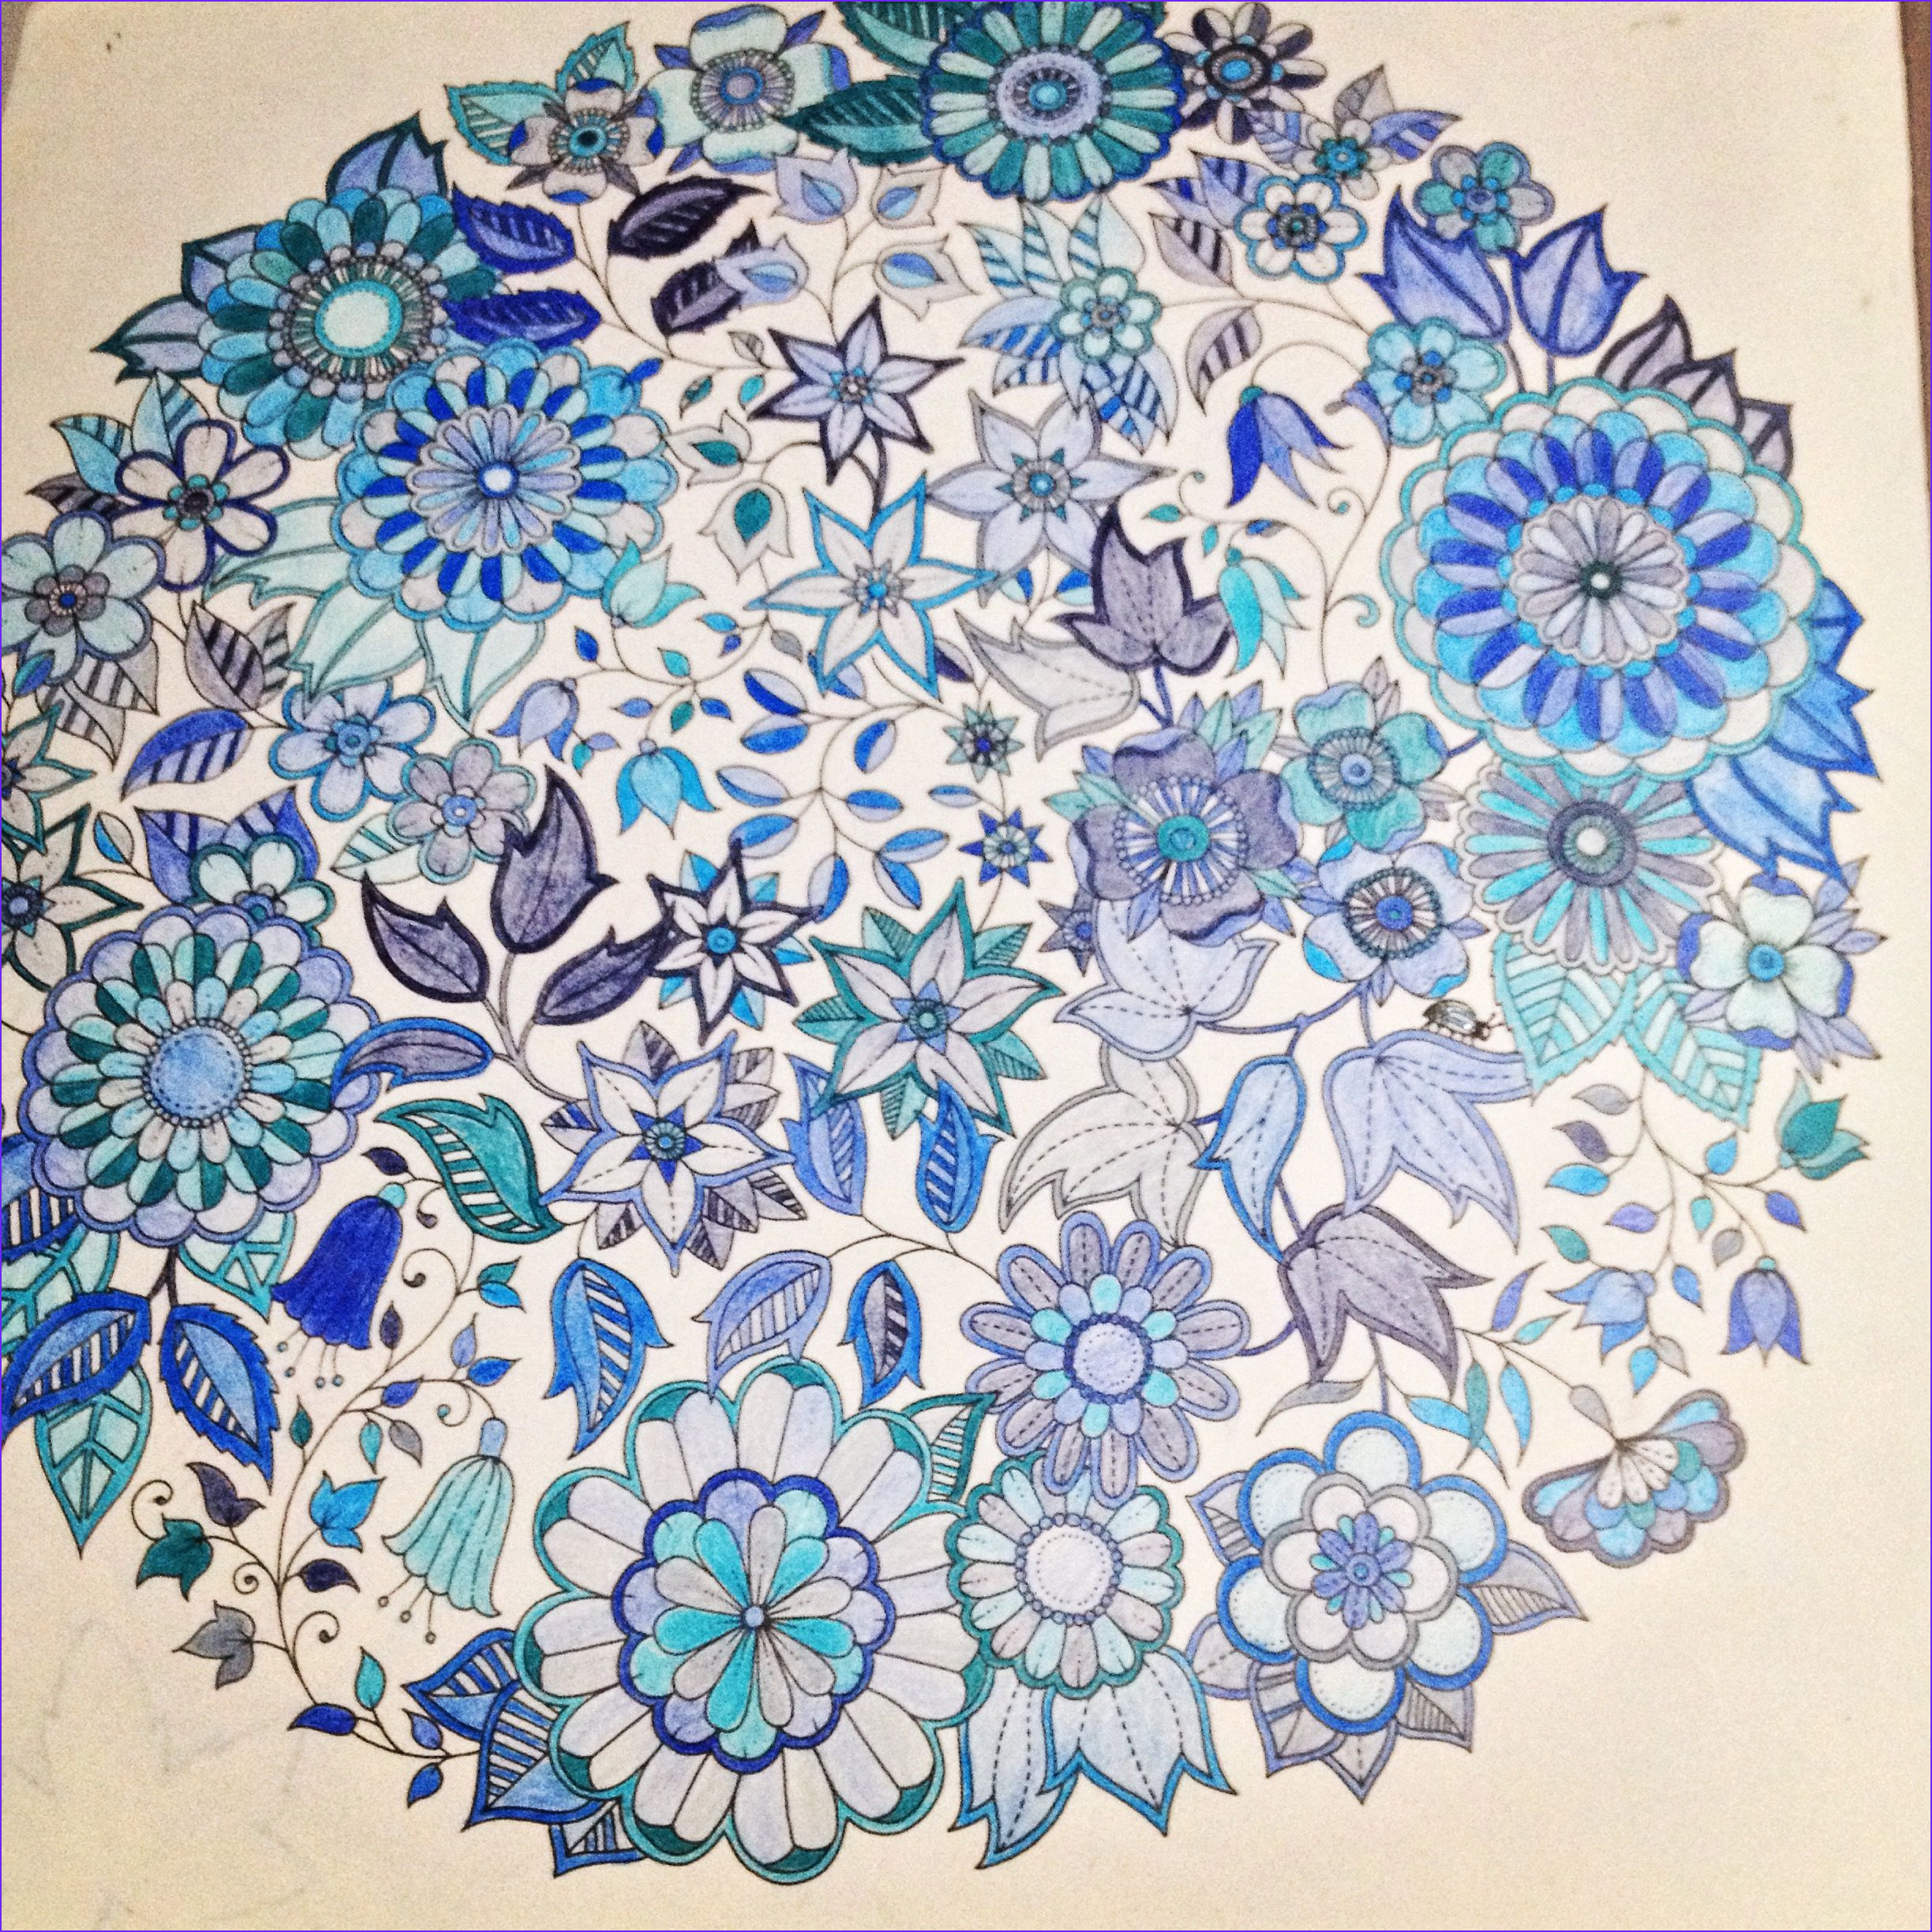 Secret Garden Coloring Page Finished Beautiful Gallery My Finished Page From Johanna Basford Secret Garden